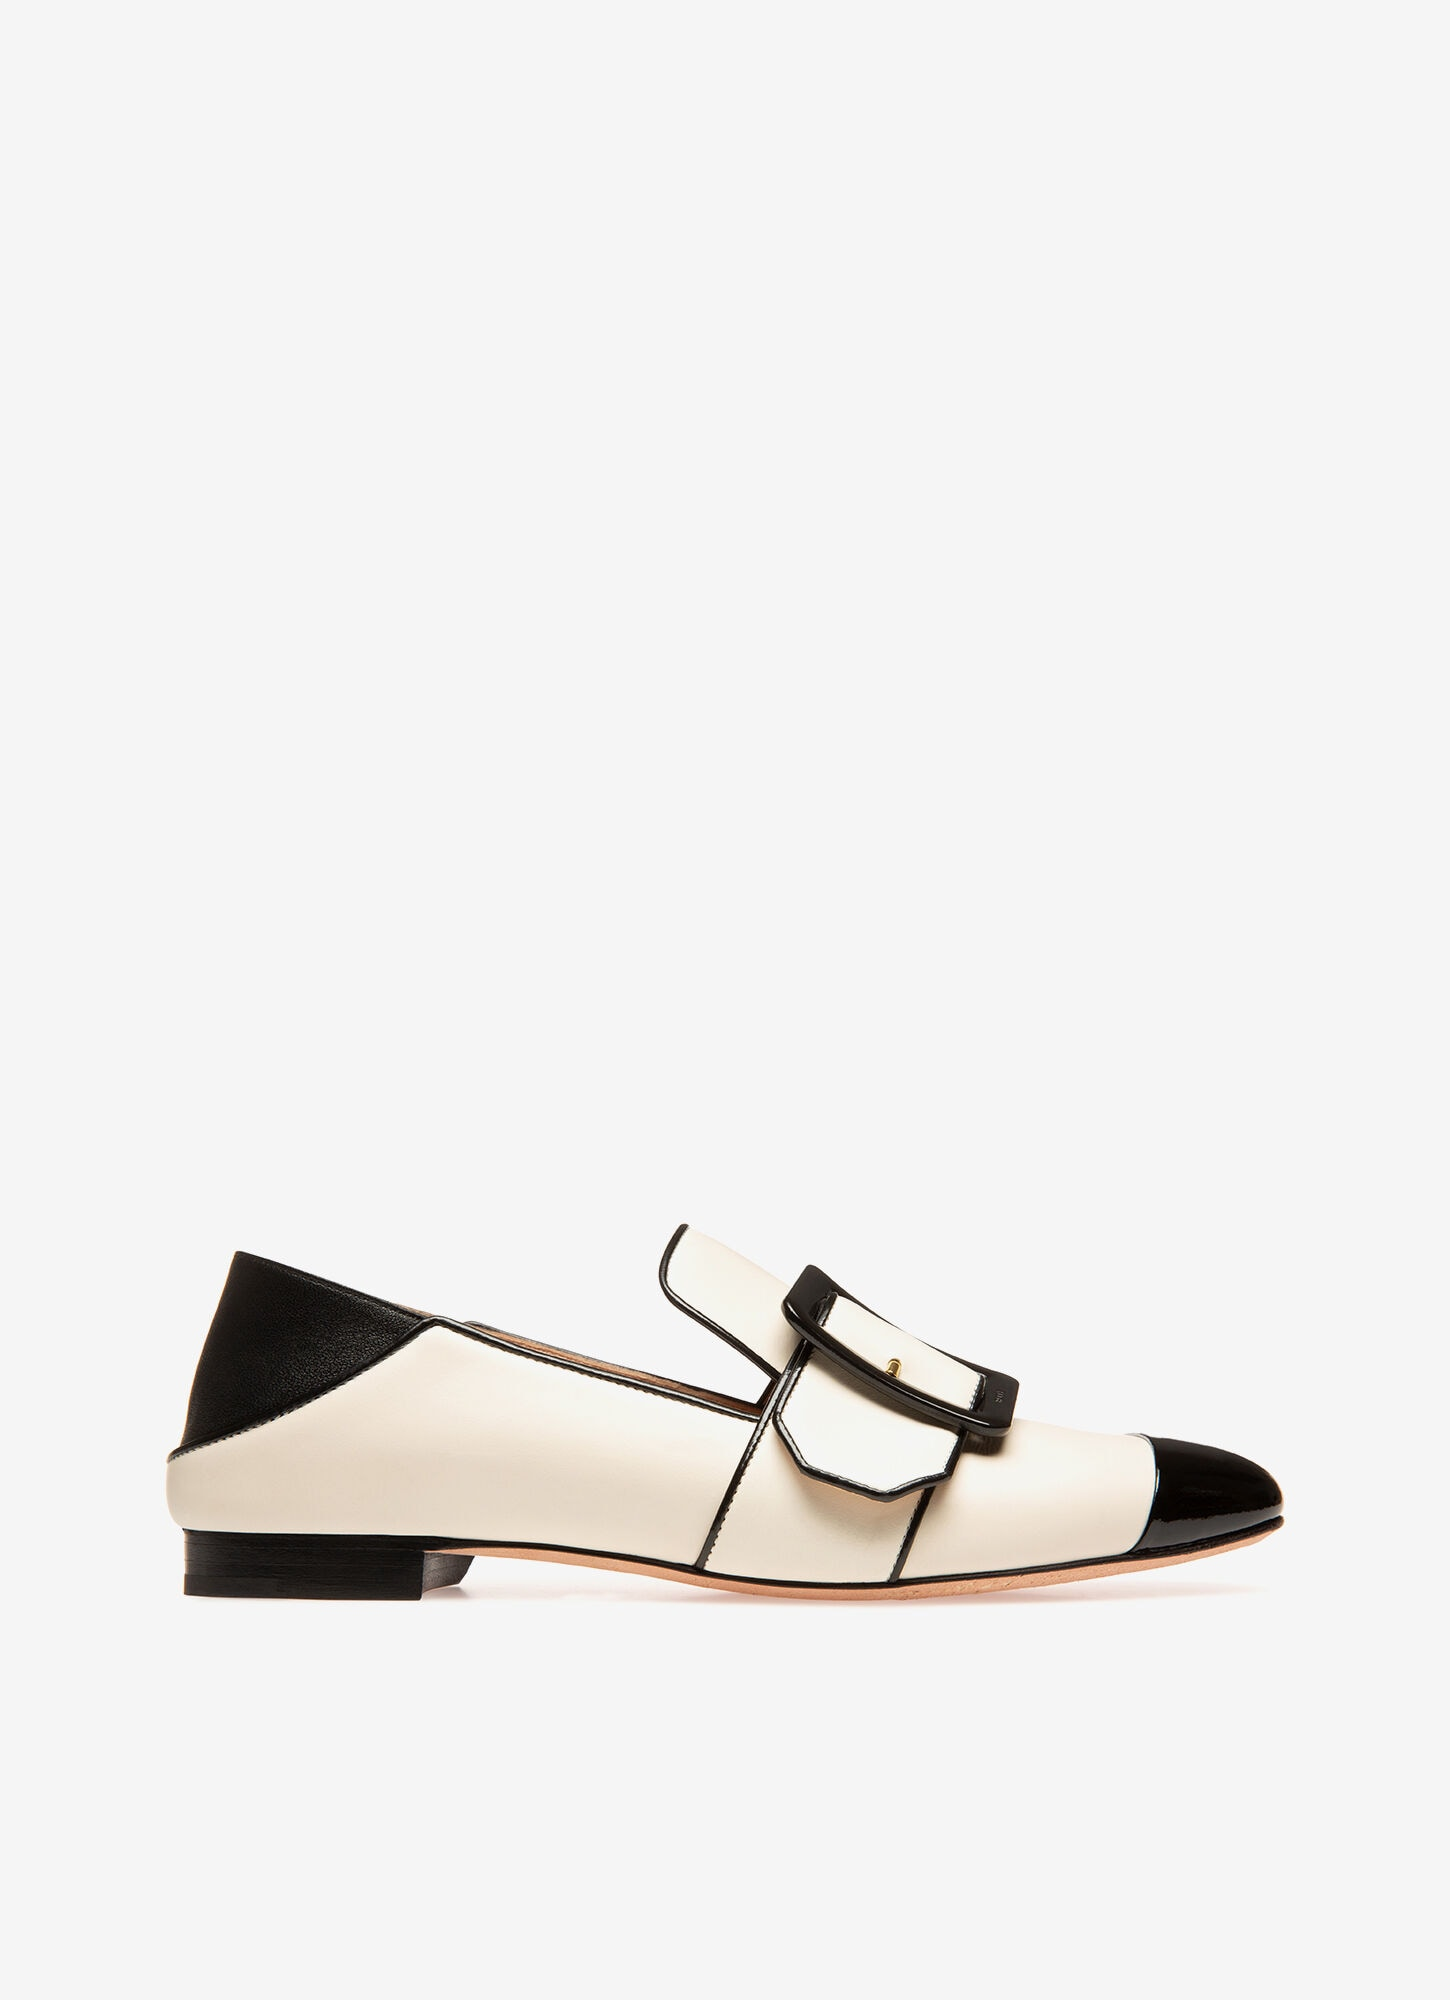 Janelle| Womens Loafers | Bone Leather